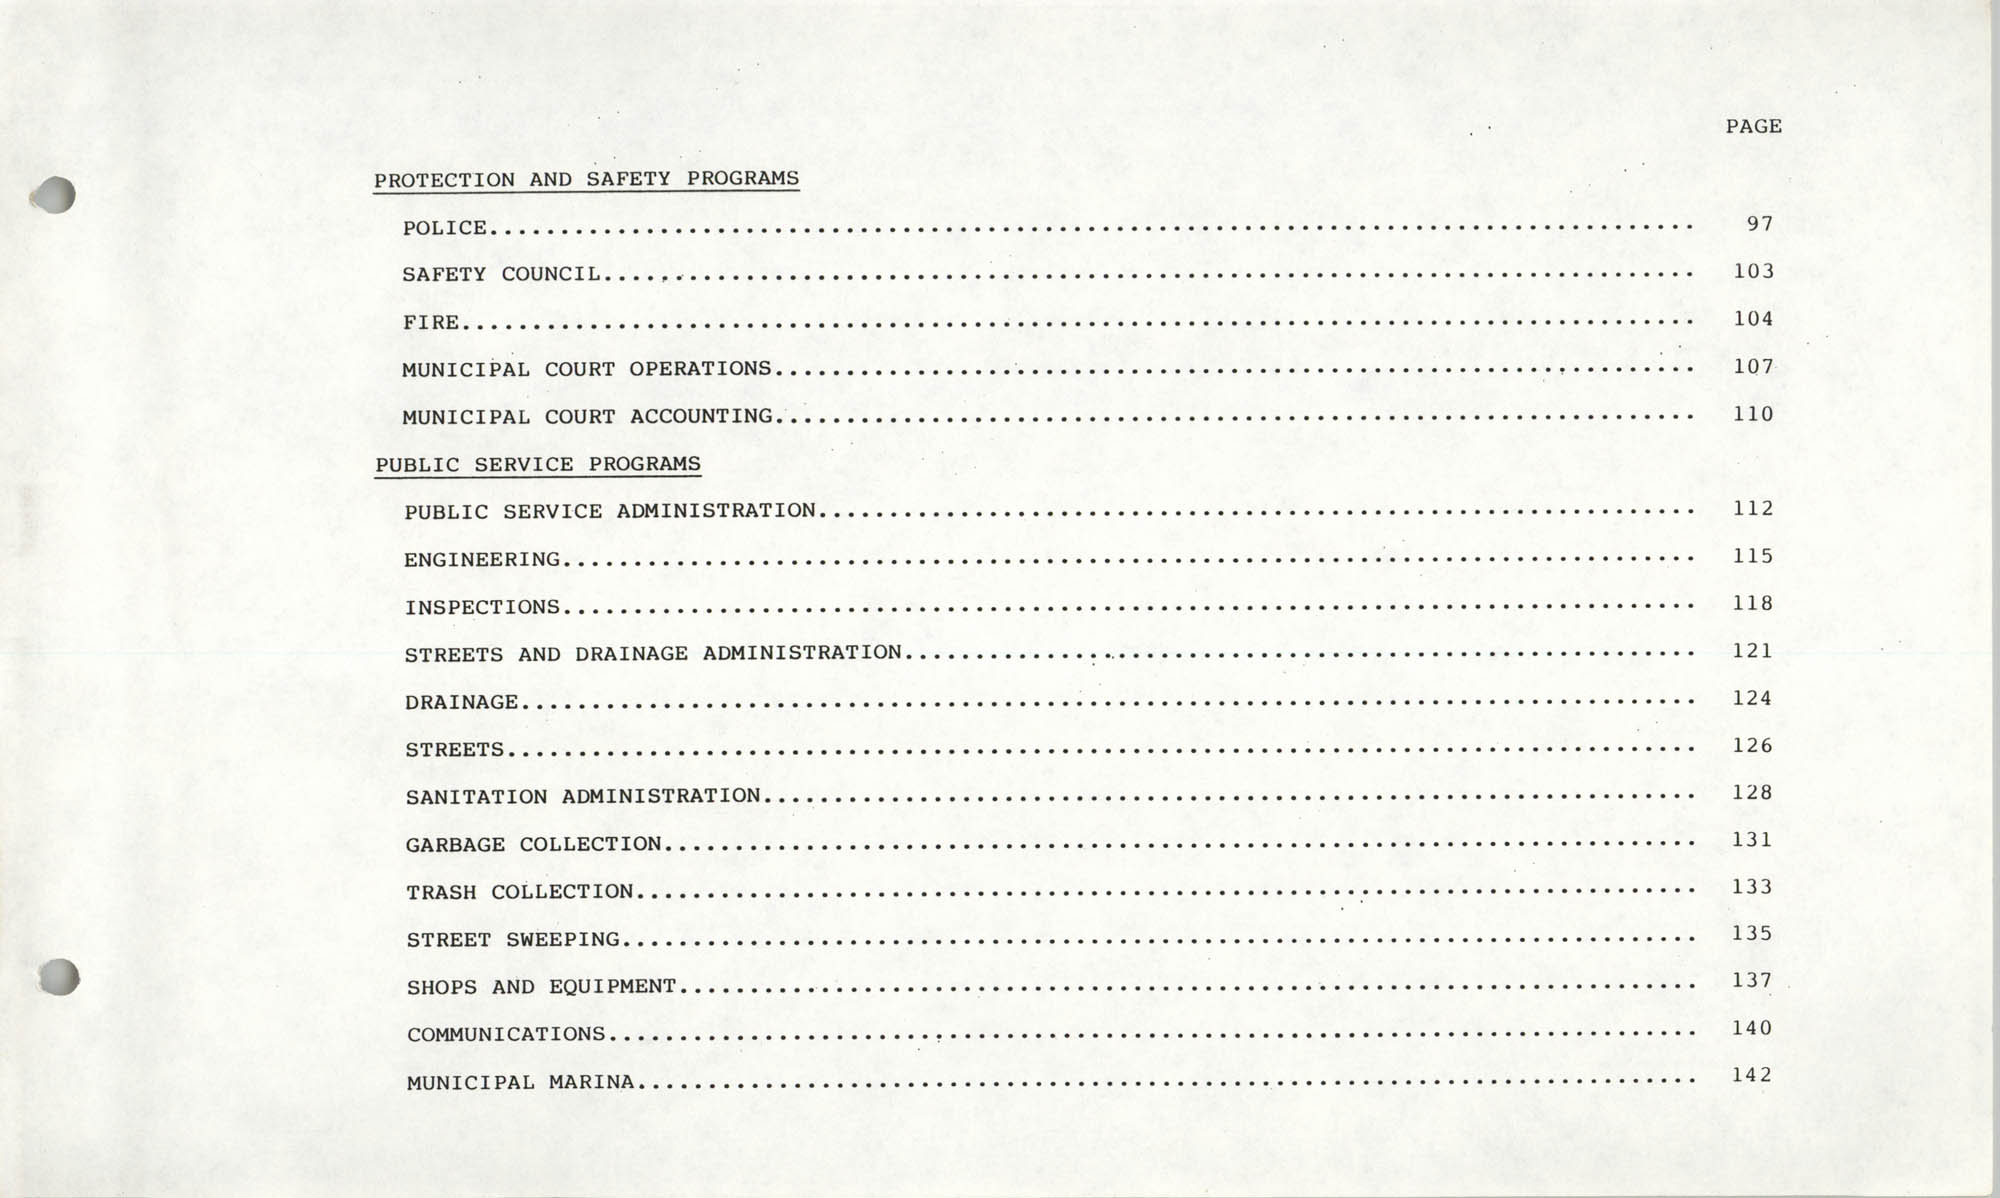 The City Council of Charleston, South Carolina, 1993 Budget, Table of Contents Page 3